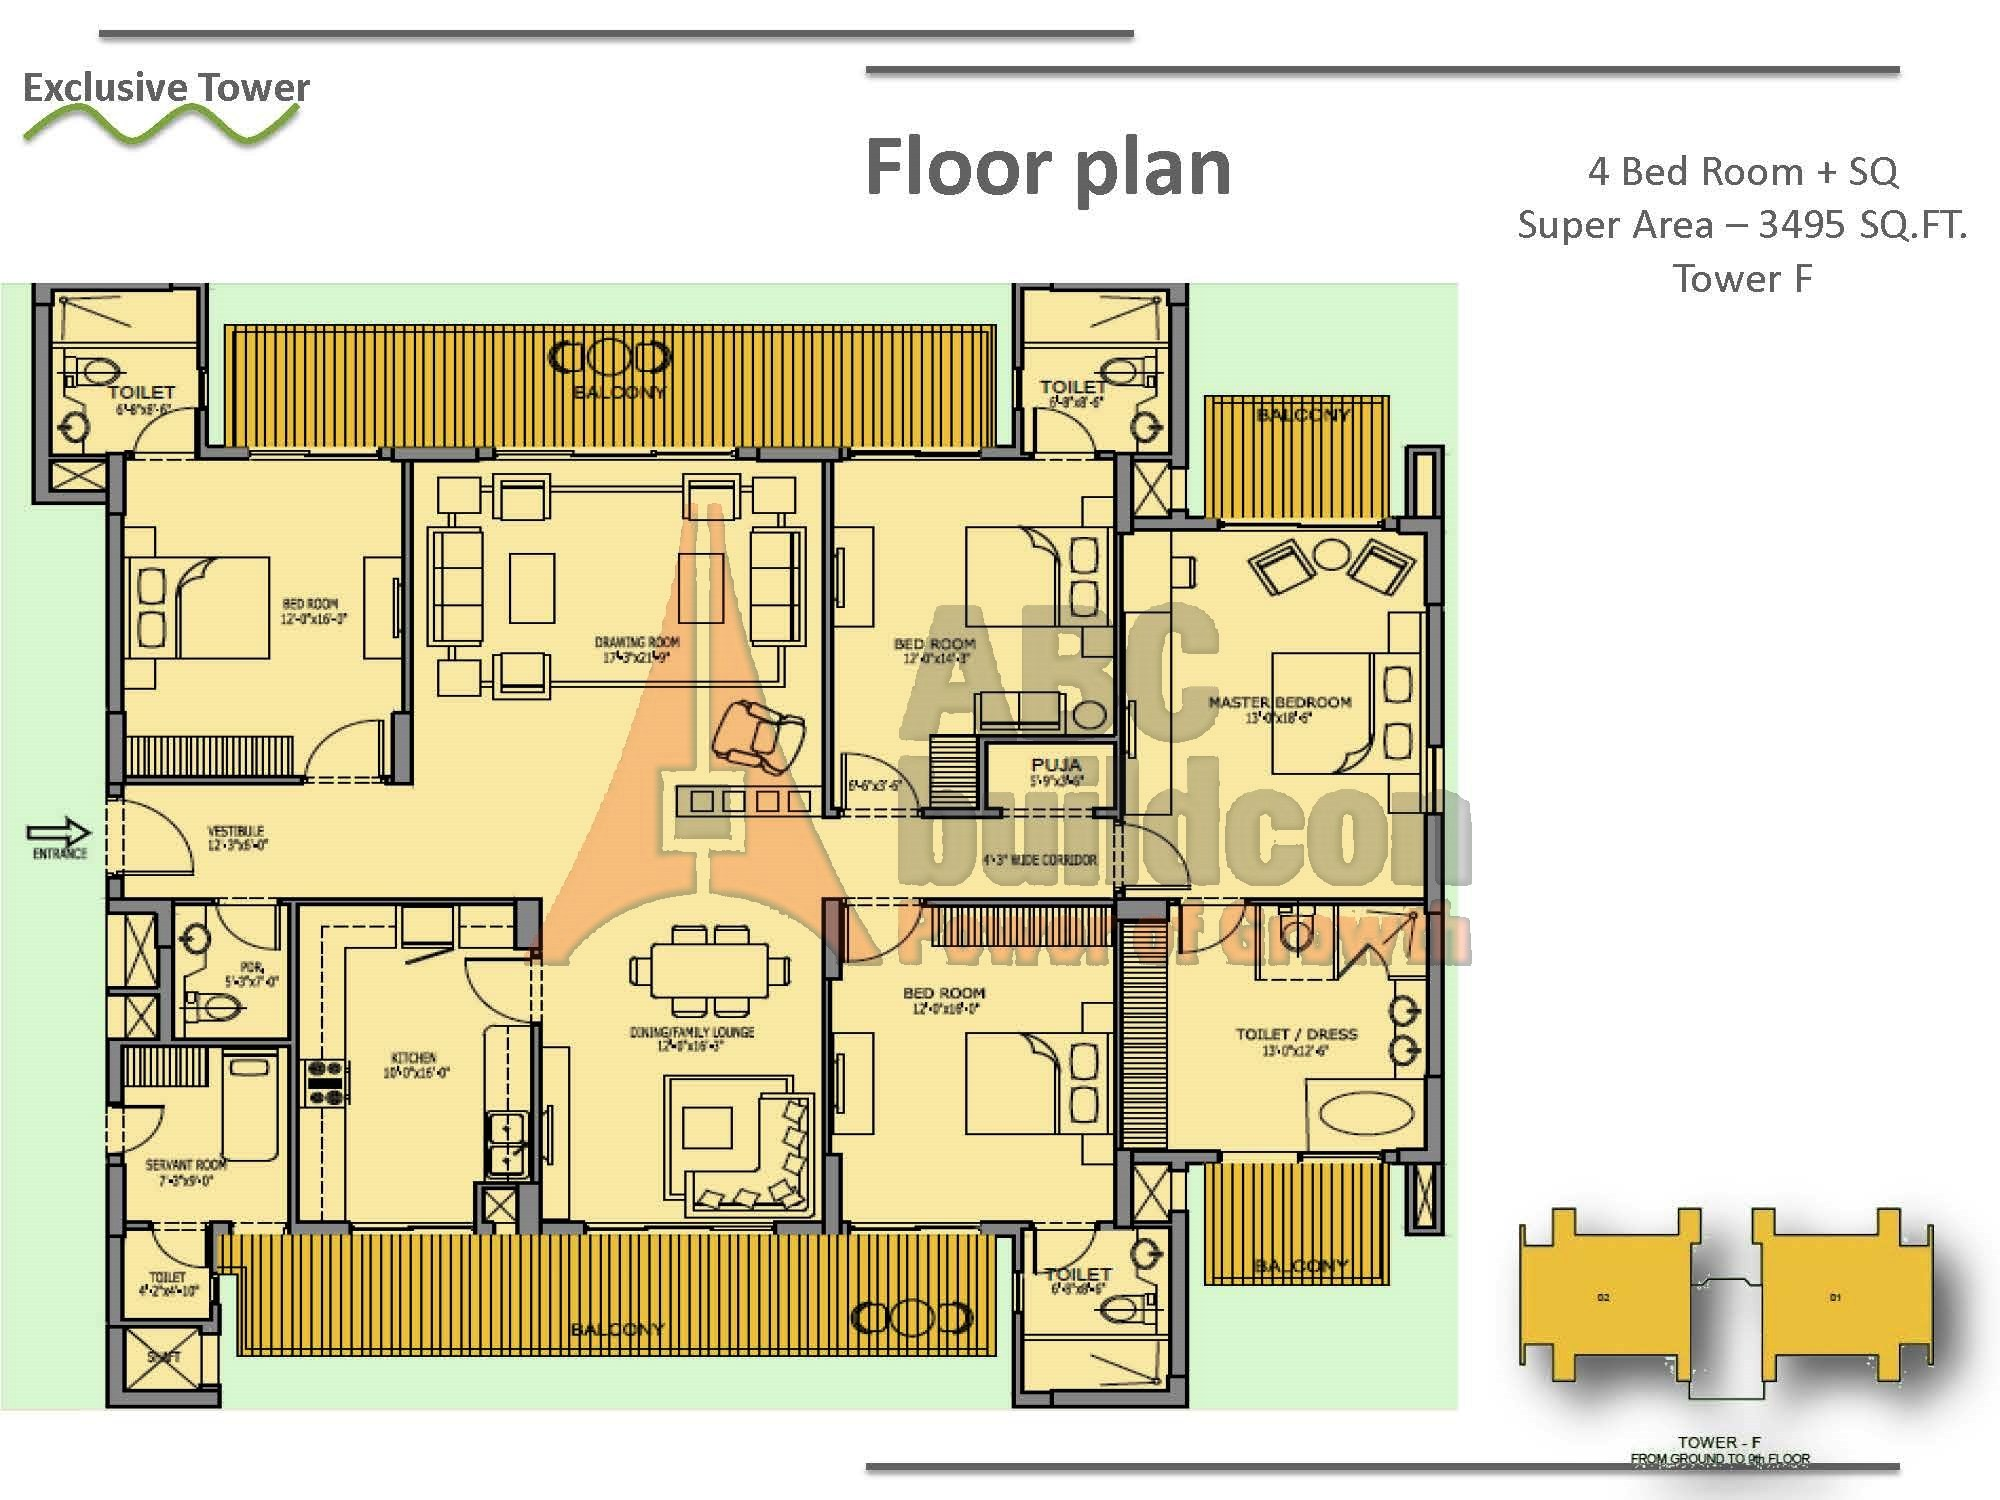 oasis floor plan best home design and decorating ideas oasis of seas floor plans of free download home plans